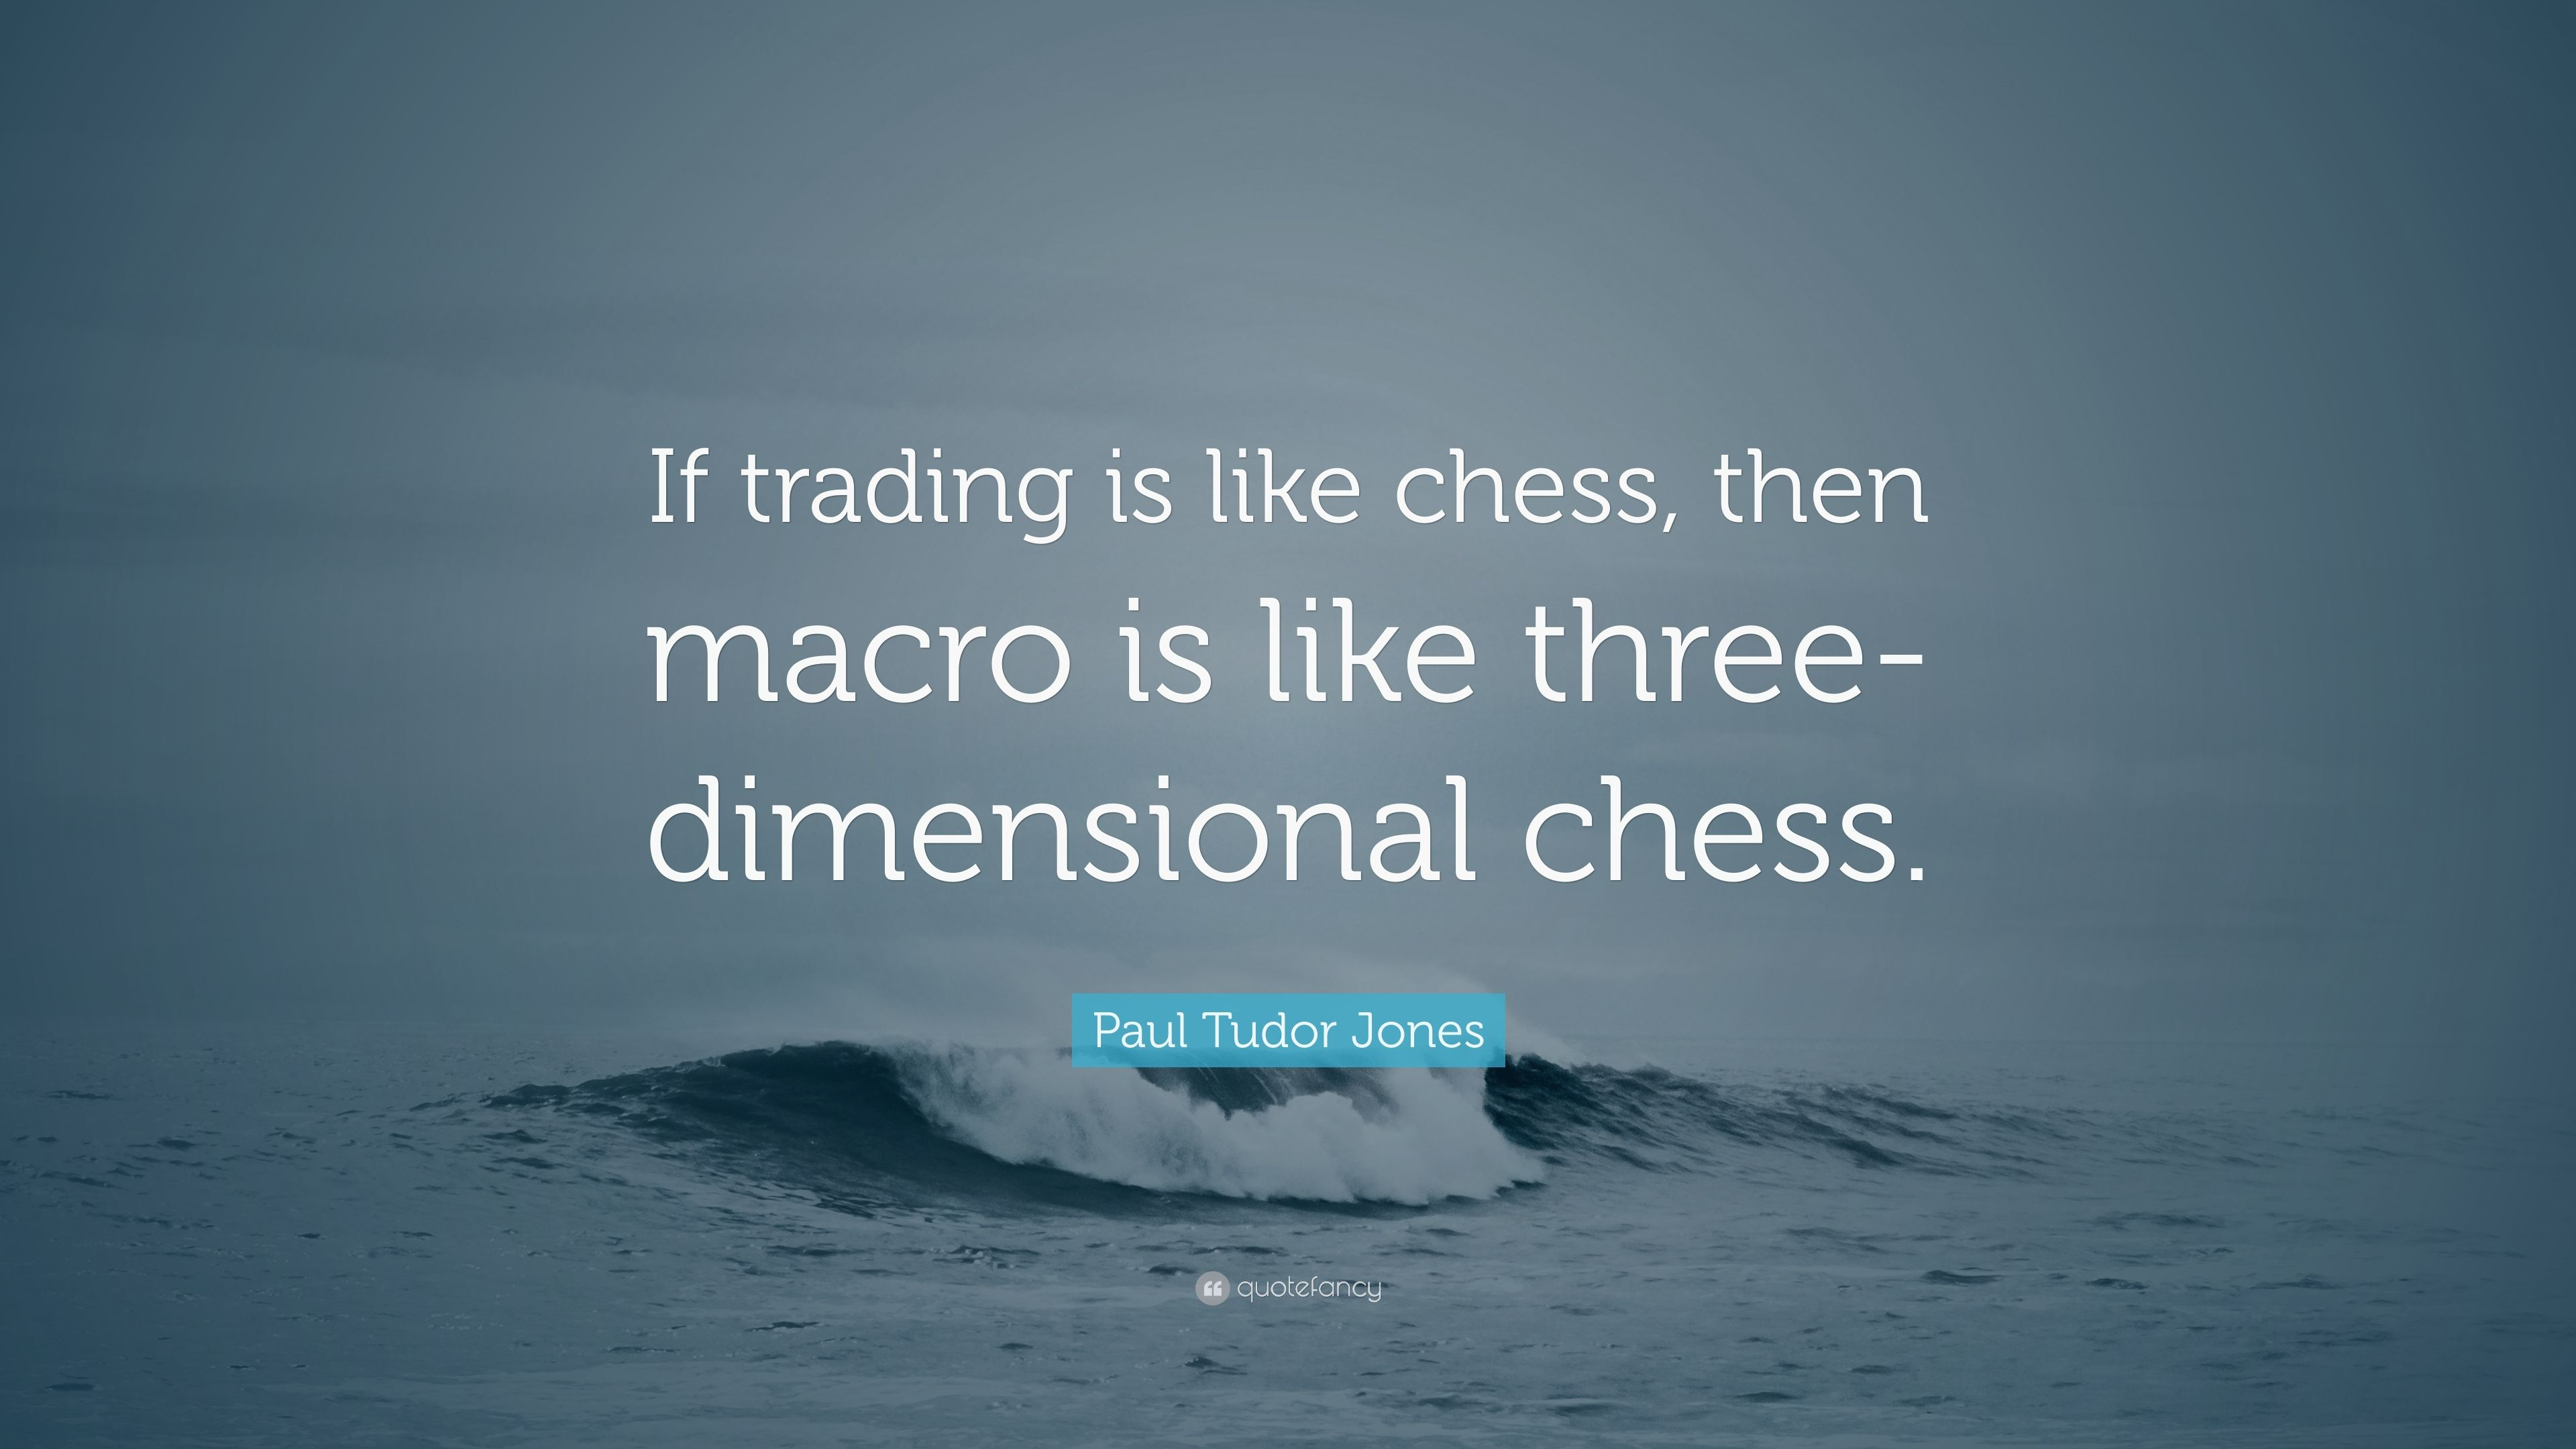 5128179-Paul-Tudor-Jones-Quote-If-trading-is-like-chess-then-macro-is-like.jpg